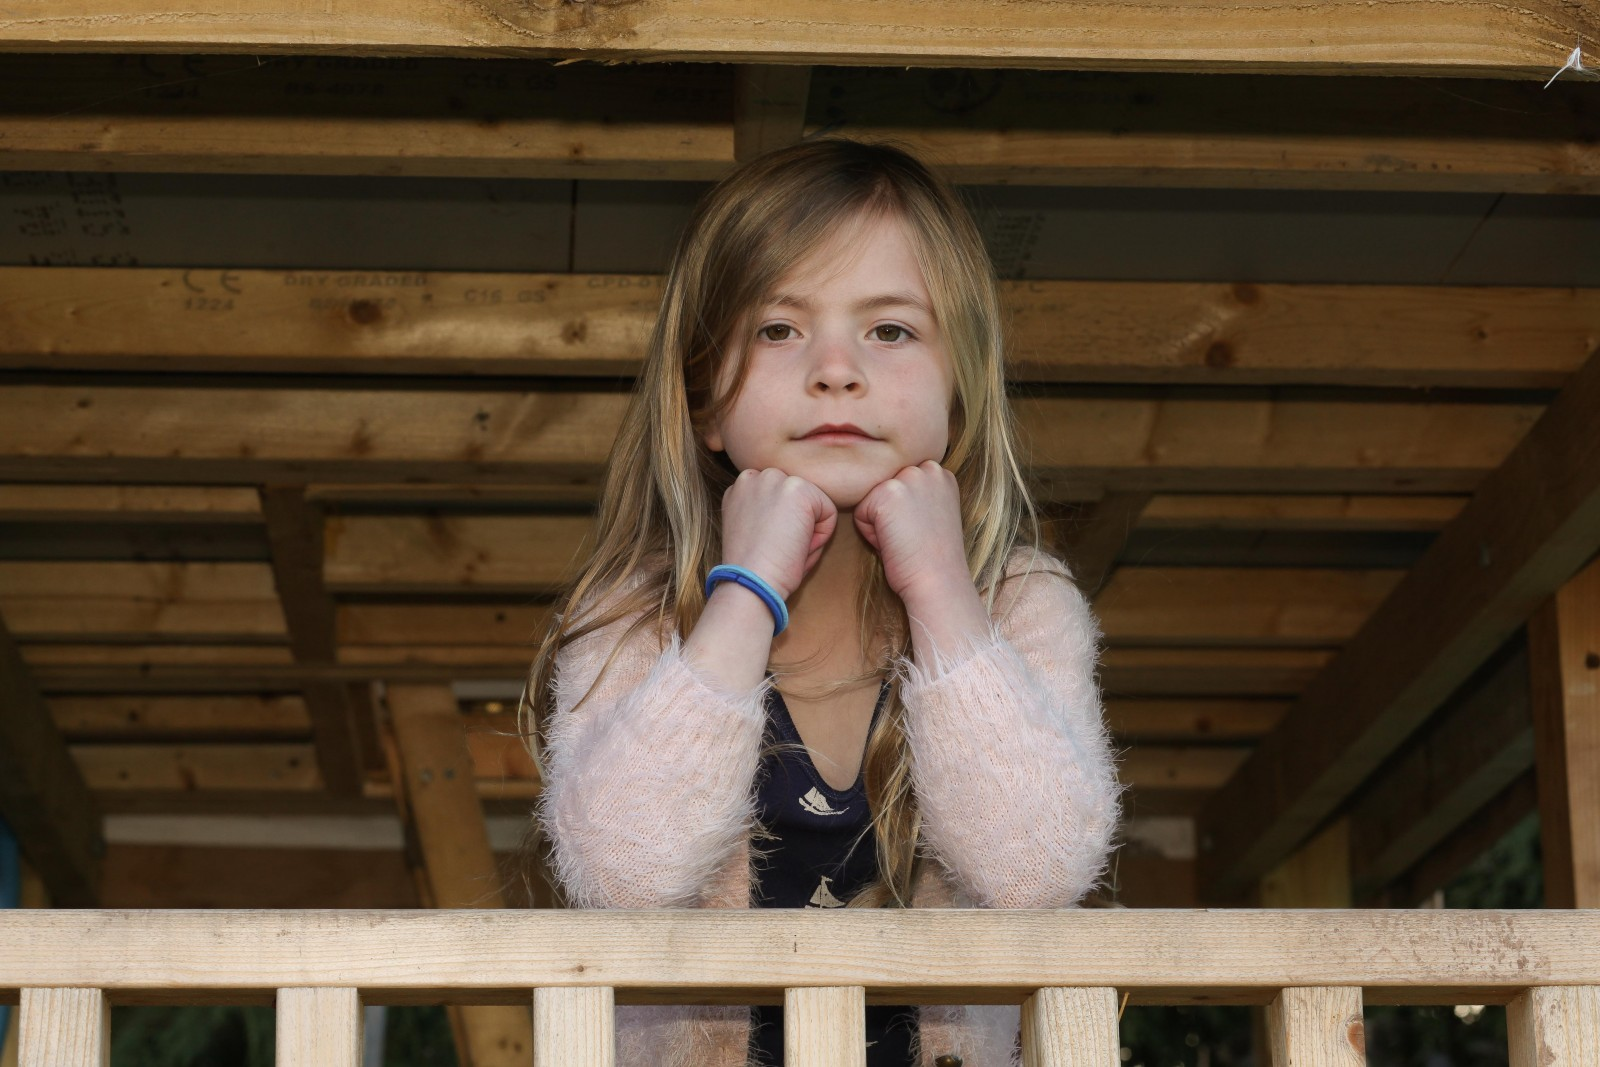 A dad is gutted after the council told him to tear down a massive 'tree house' he built for his seven-year-old daughter